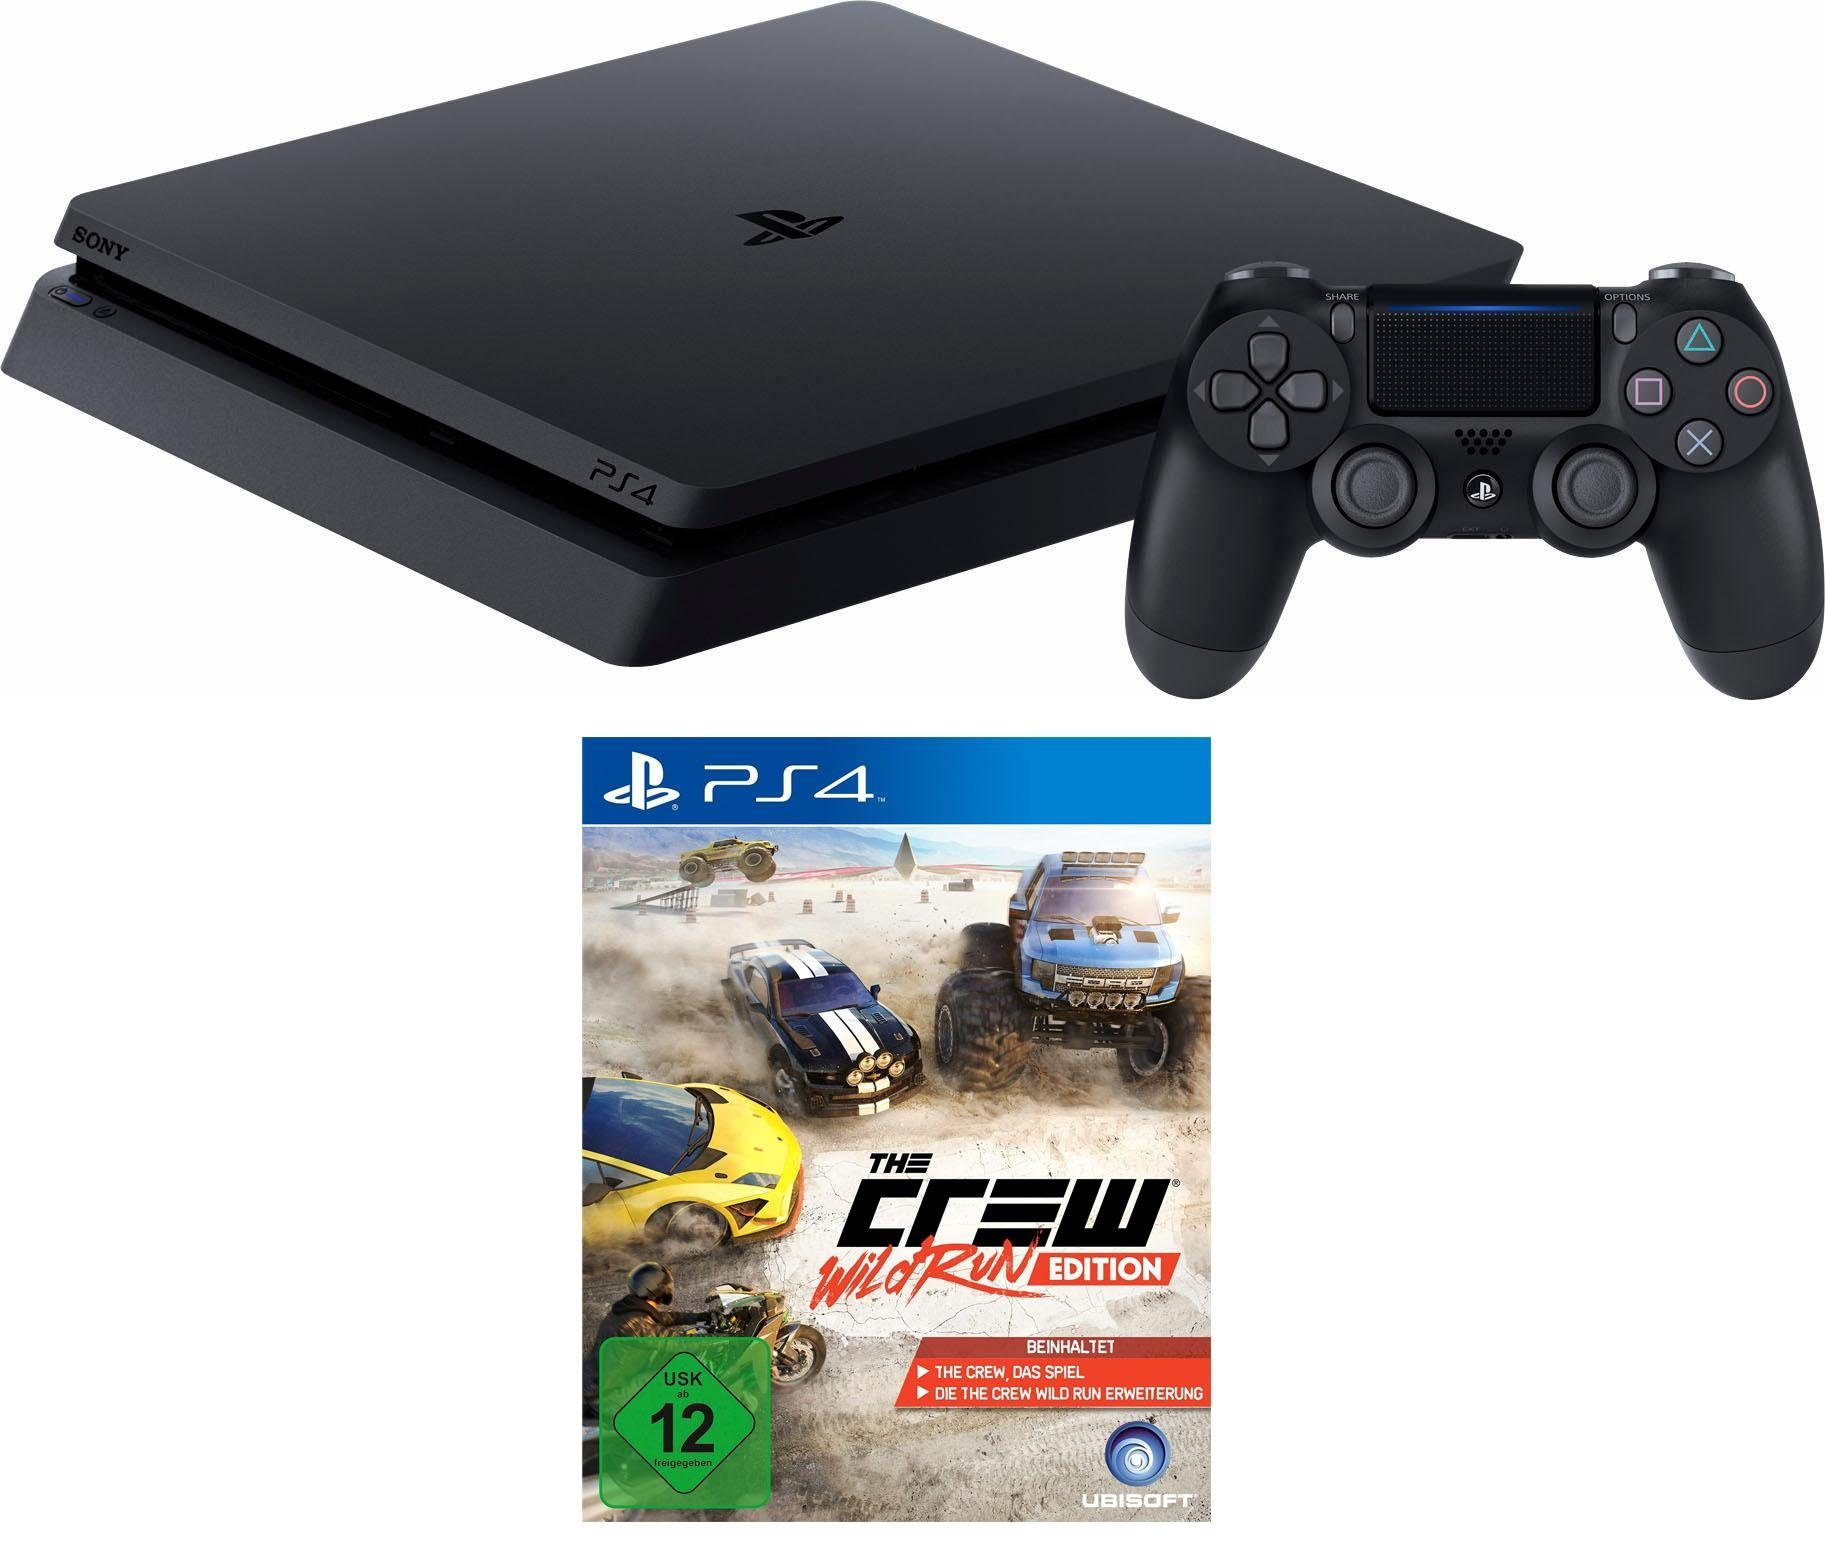 PlayStation 4 (PS4) 500 GB + The Crew Wild Run Edition Konsolen-Set